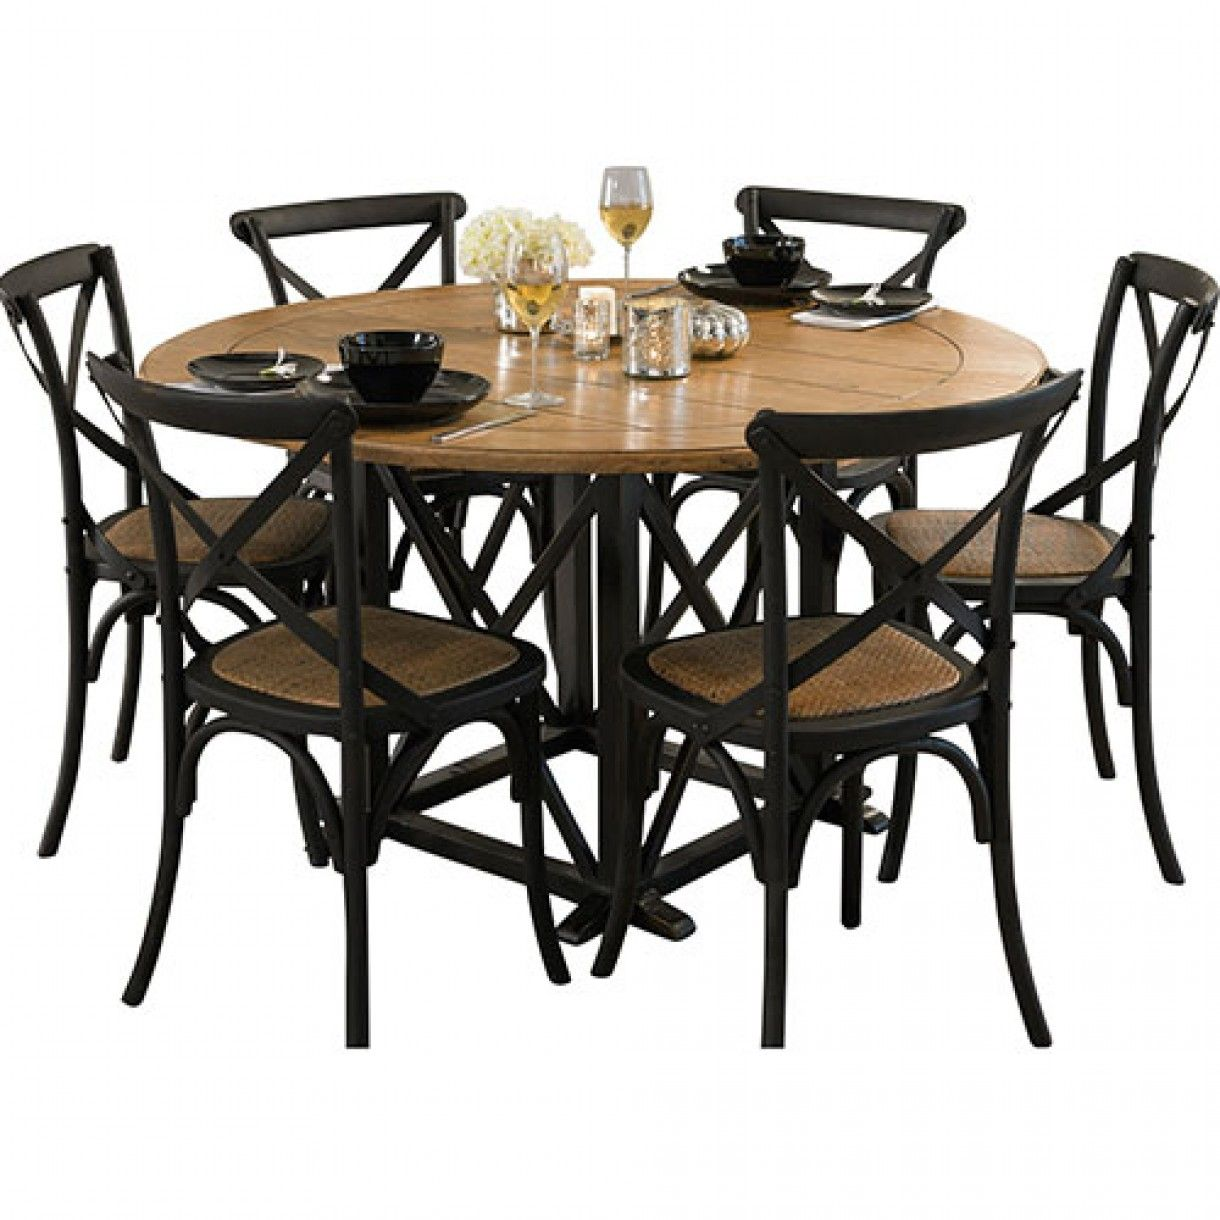 Oak Round Dining Table And Chairs Provincial Oak Round Table Black With 6 Cross Back Chairs Black